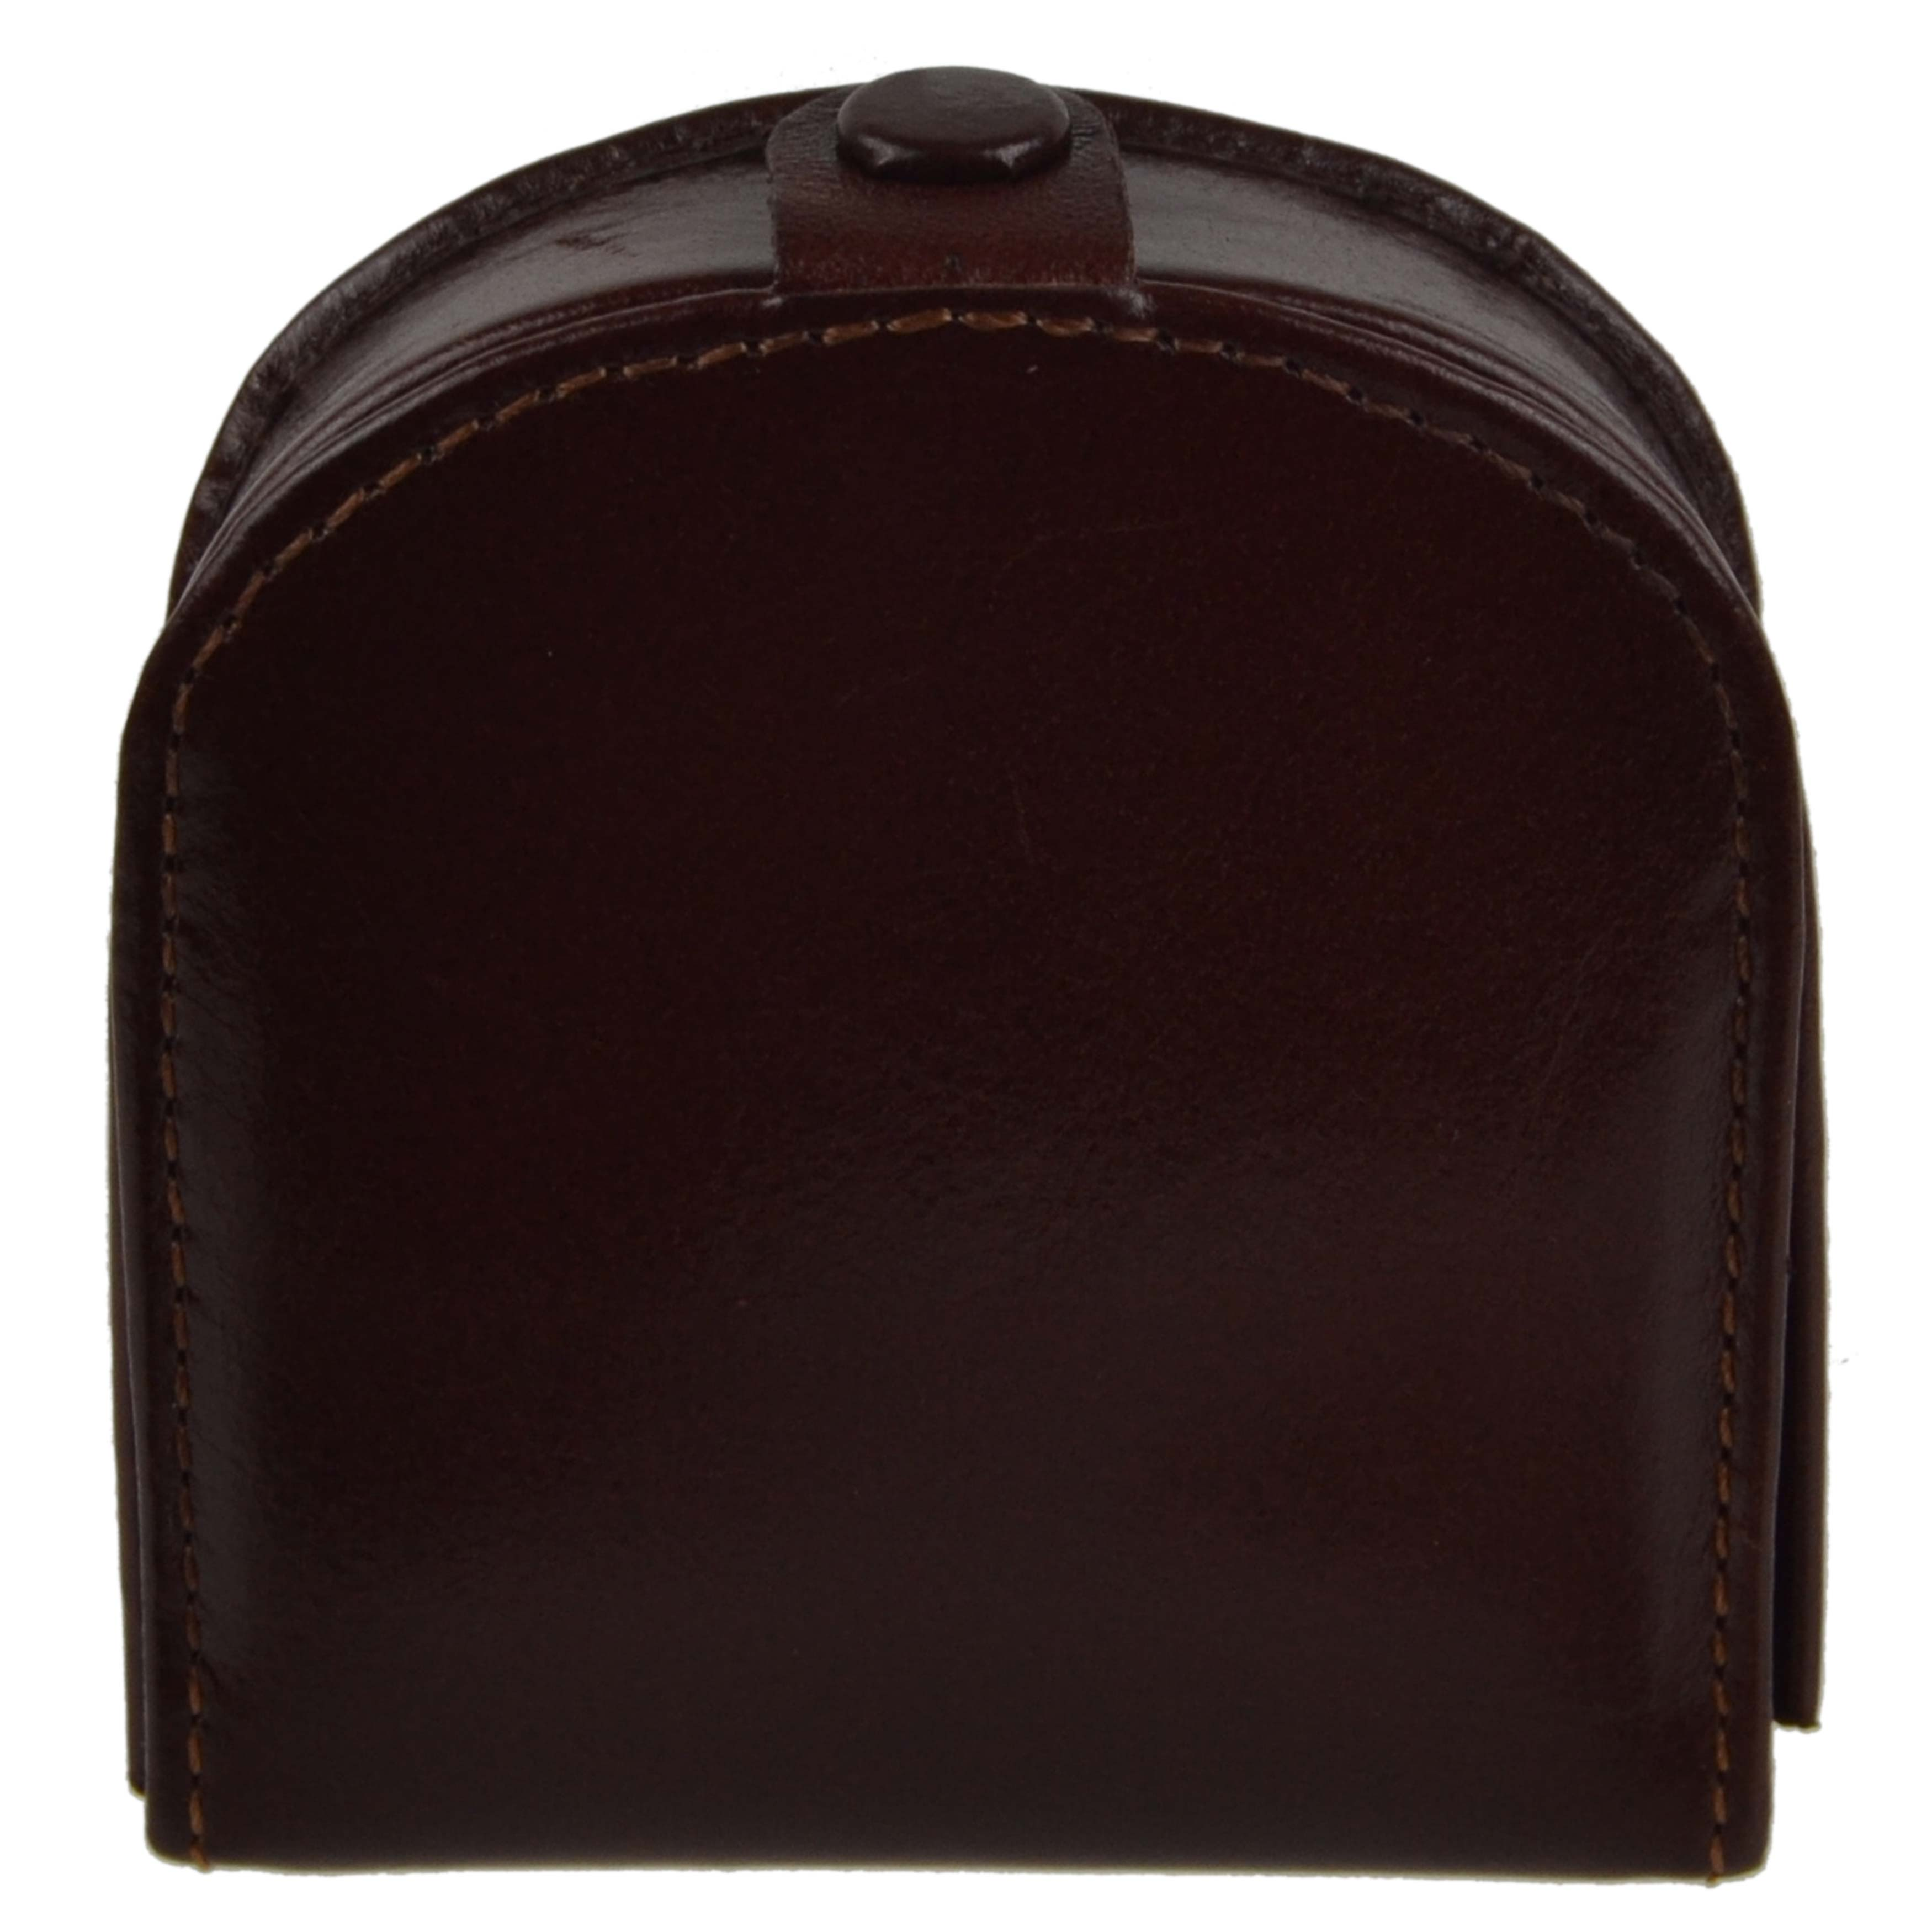 thumbnail 16 - Mens-Classic-Leather-Tabbed-Coin-Tray-by-Visconti-Monza-Collection-Gift-Boxed